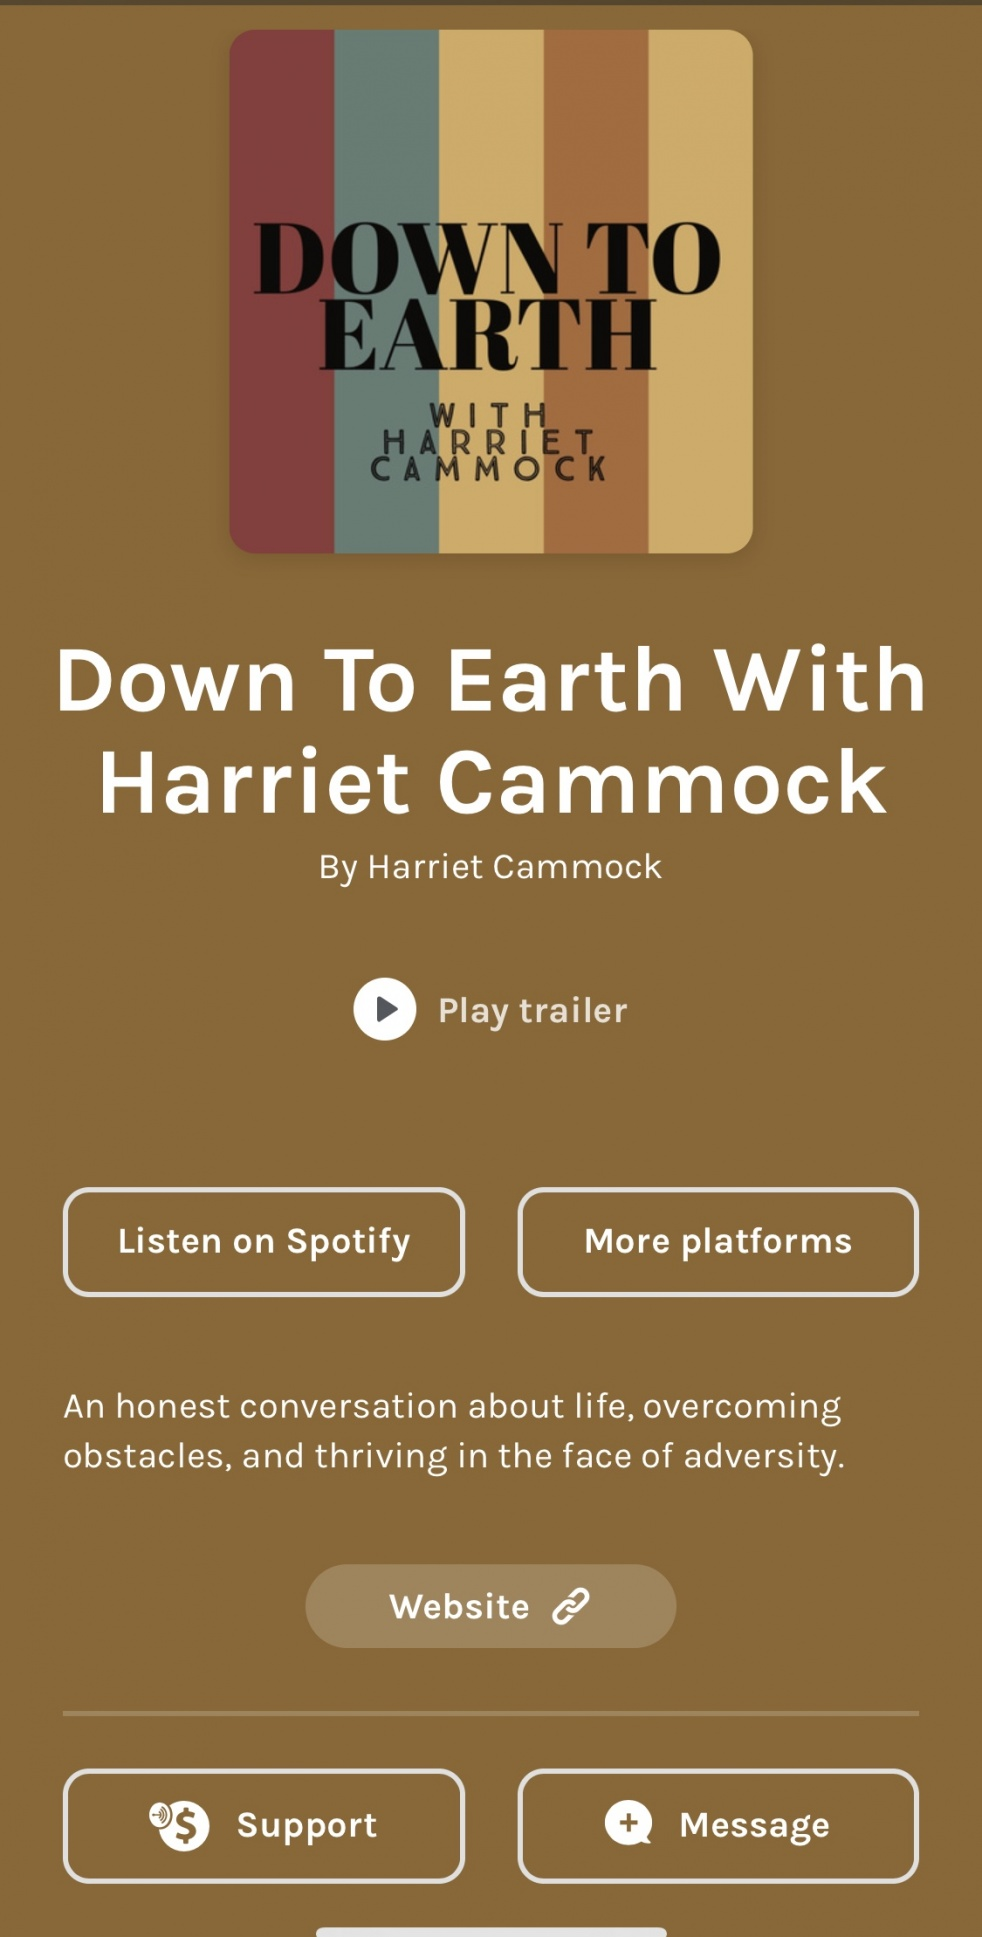 Down To Earth With Harriet Cammock - Cover Image